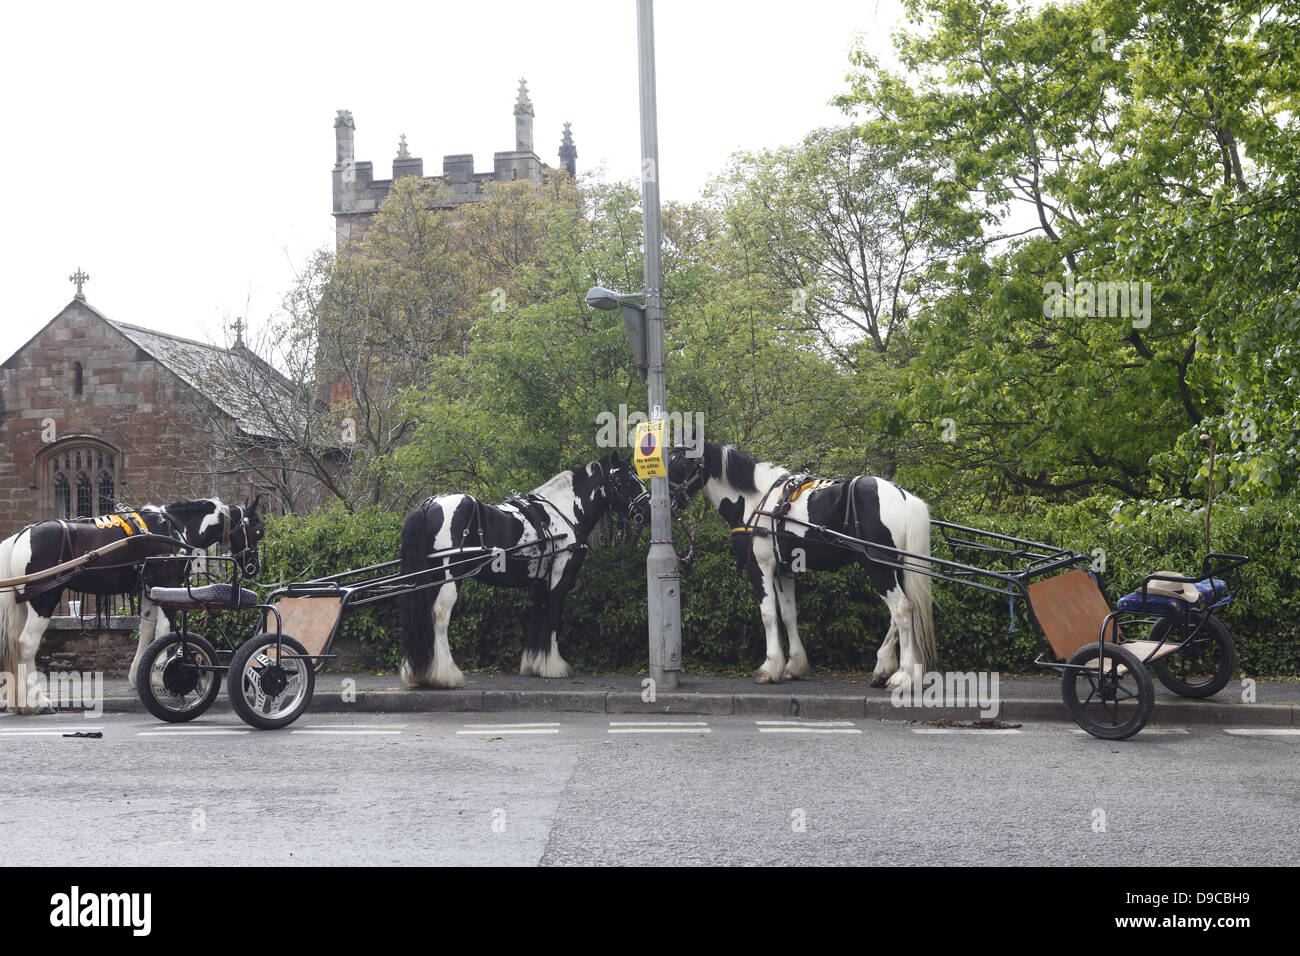 Gypsy horses with their carriages parked on the pavement with a 'No parking' sign during Appleby Horse Fair, - Stock Image